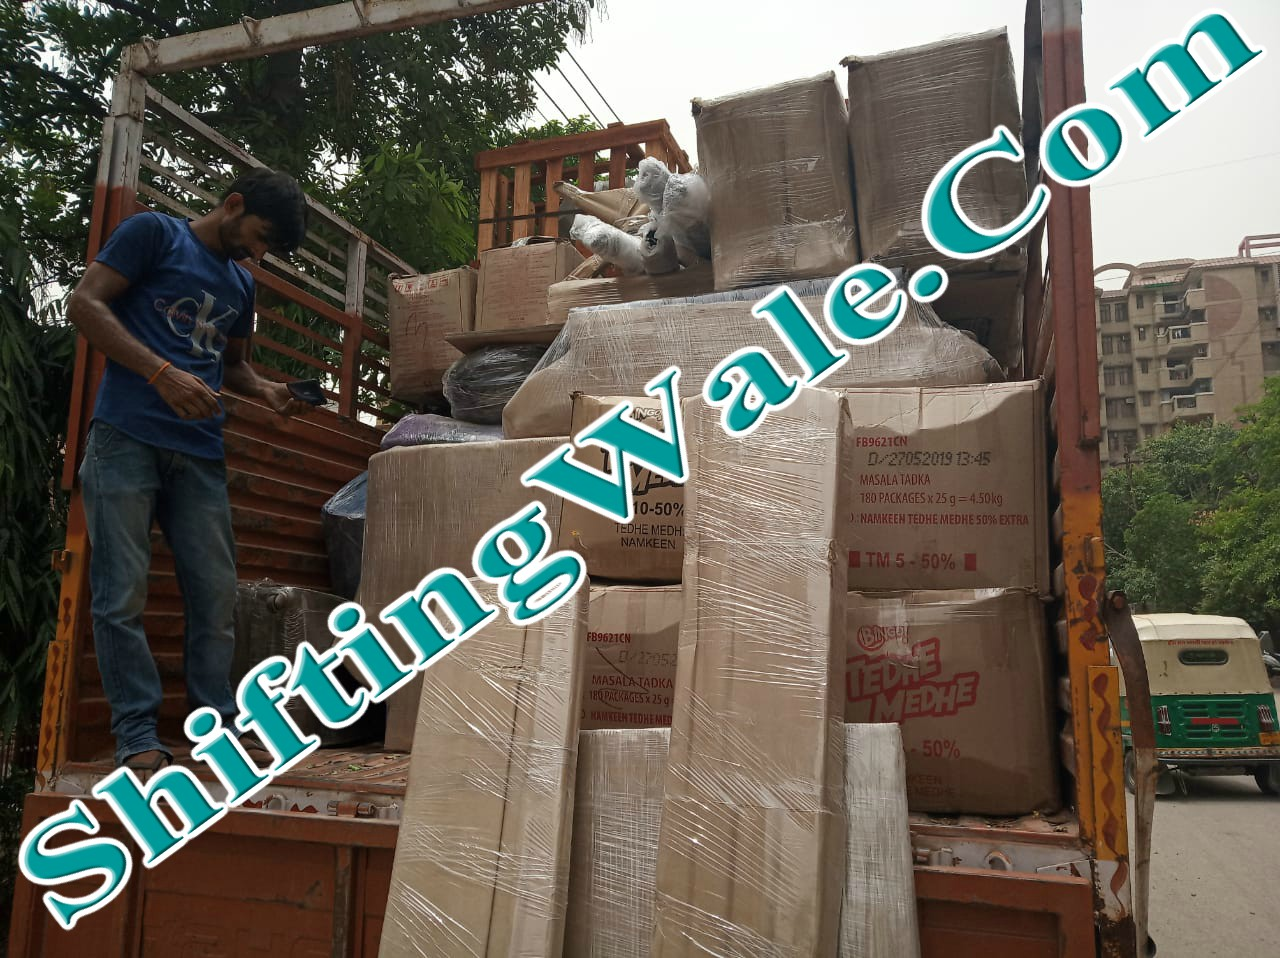 Bhiwadi to Chennai Trusted Packers and Movers Get Best Transport